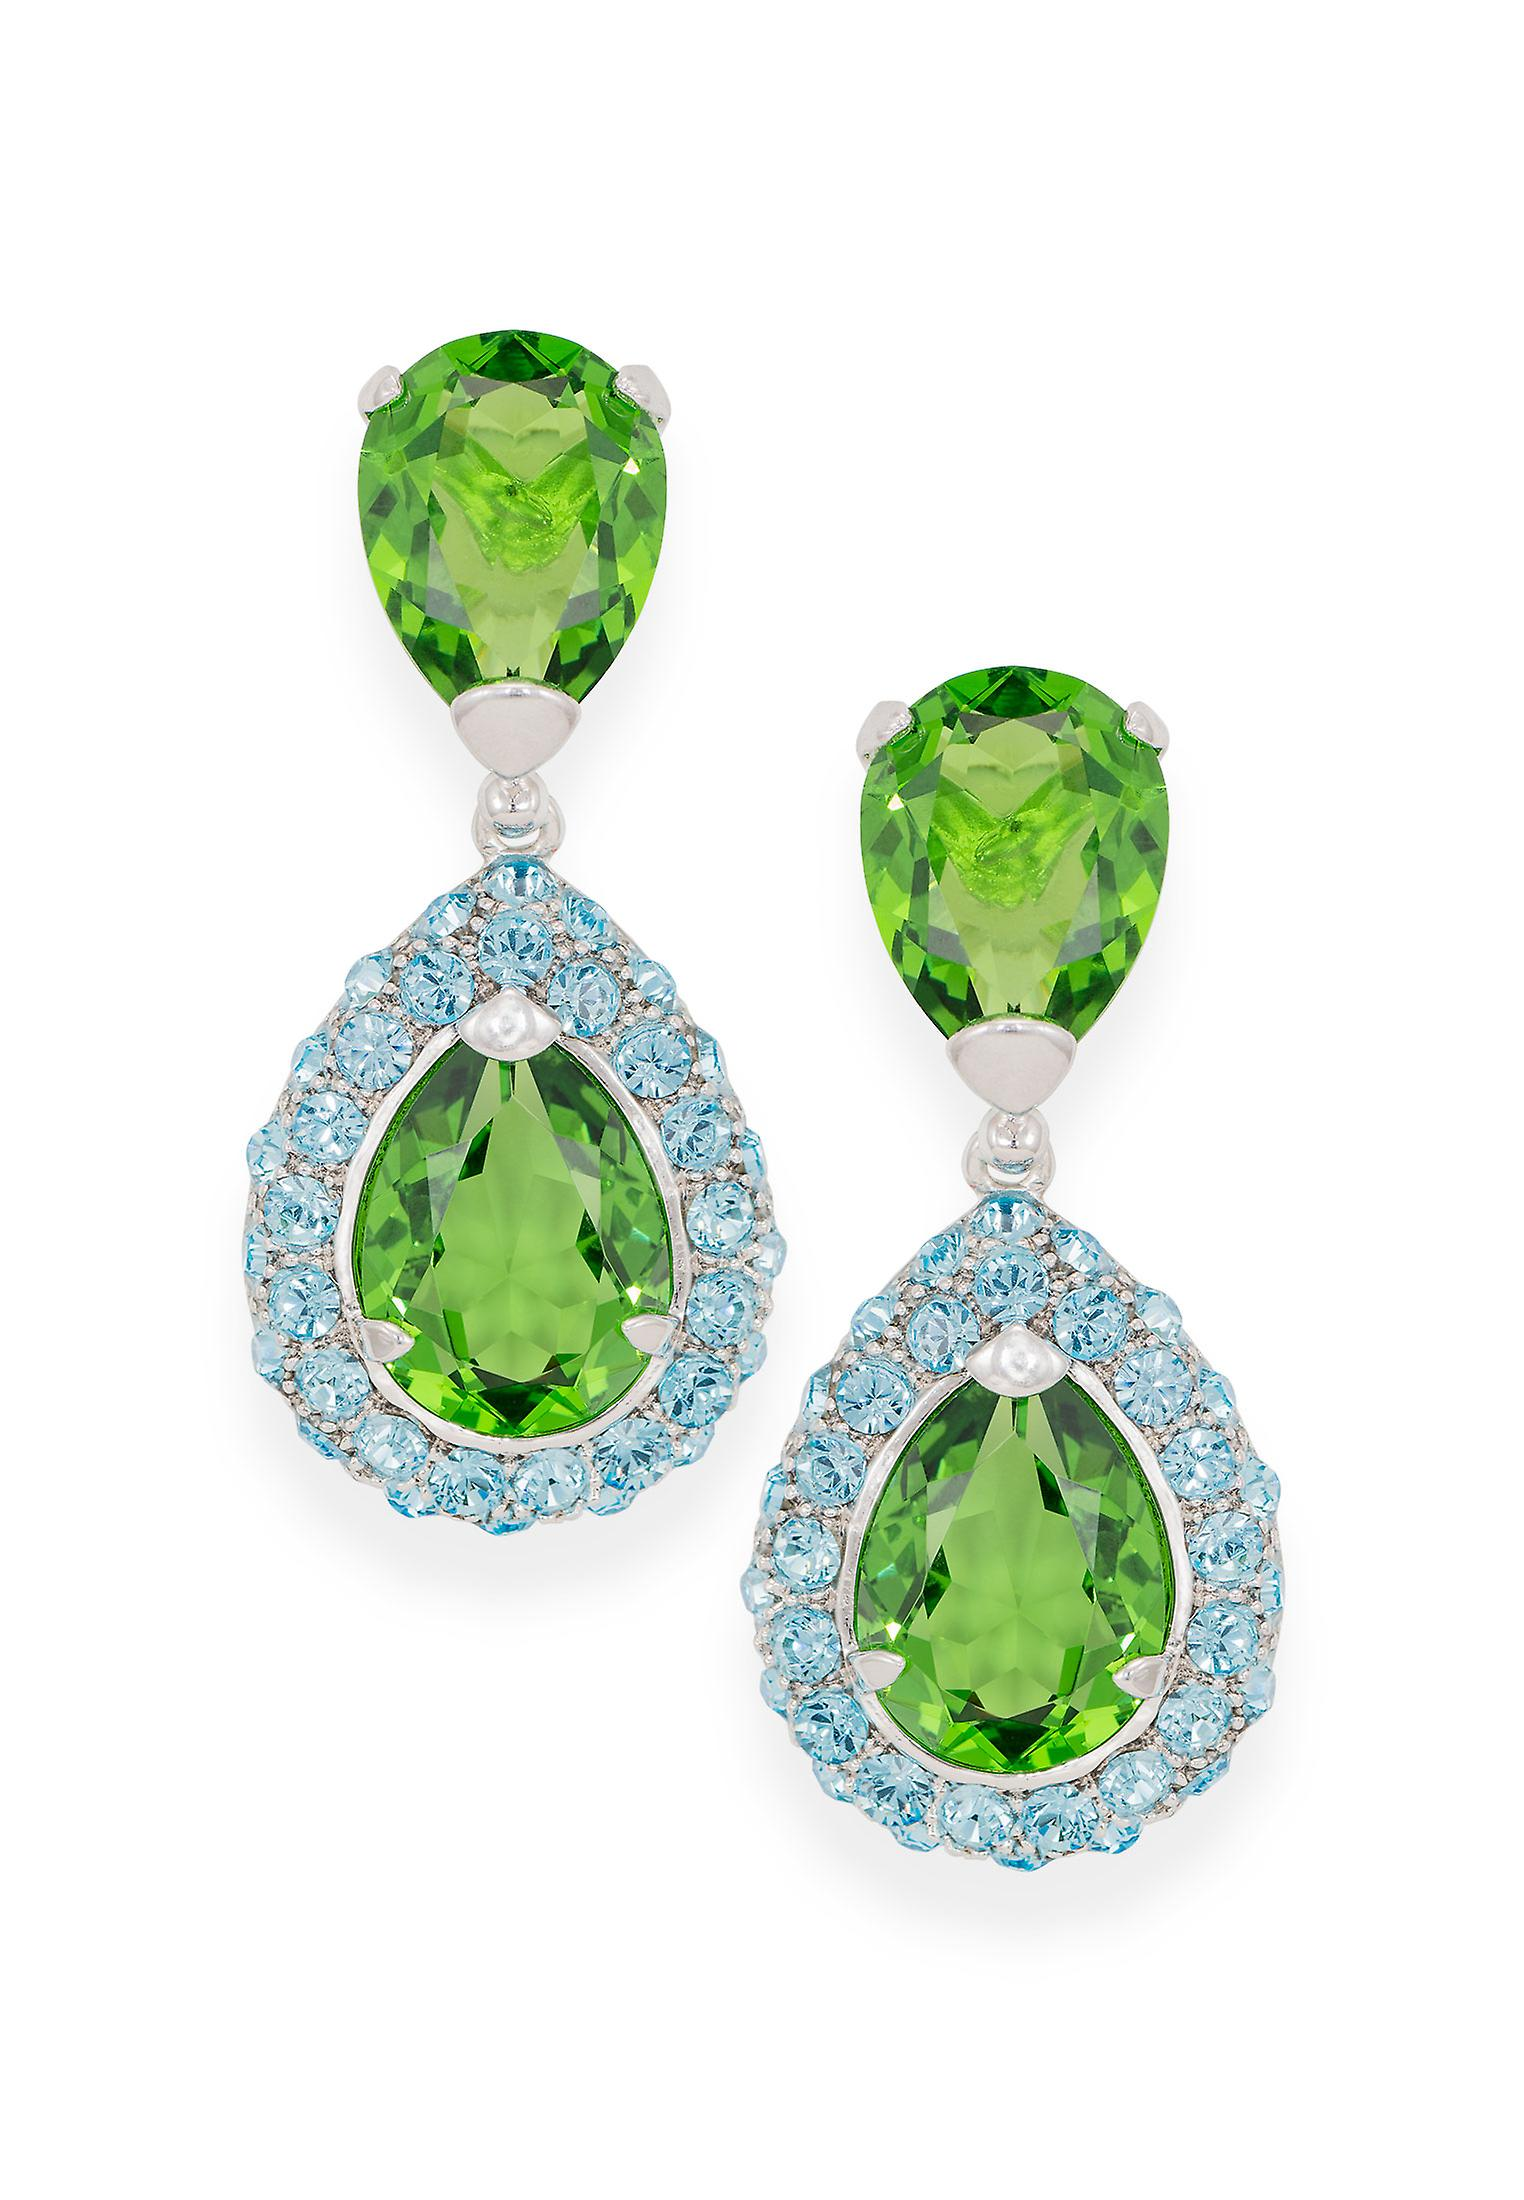 Green earrings with Crystals from Swarovski 4807